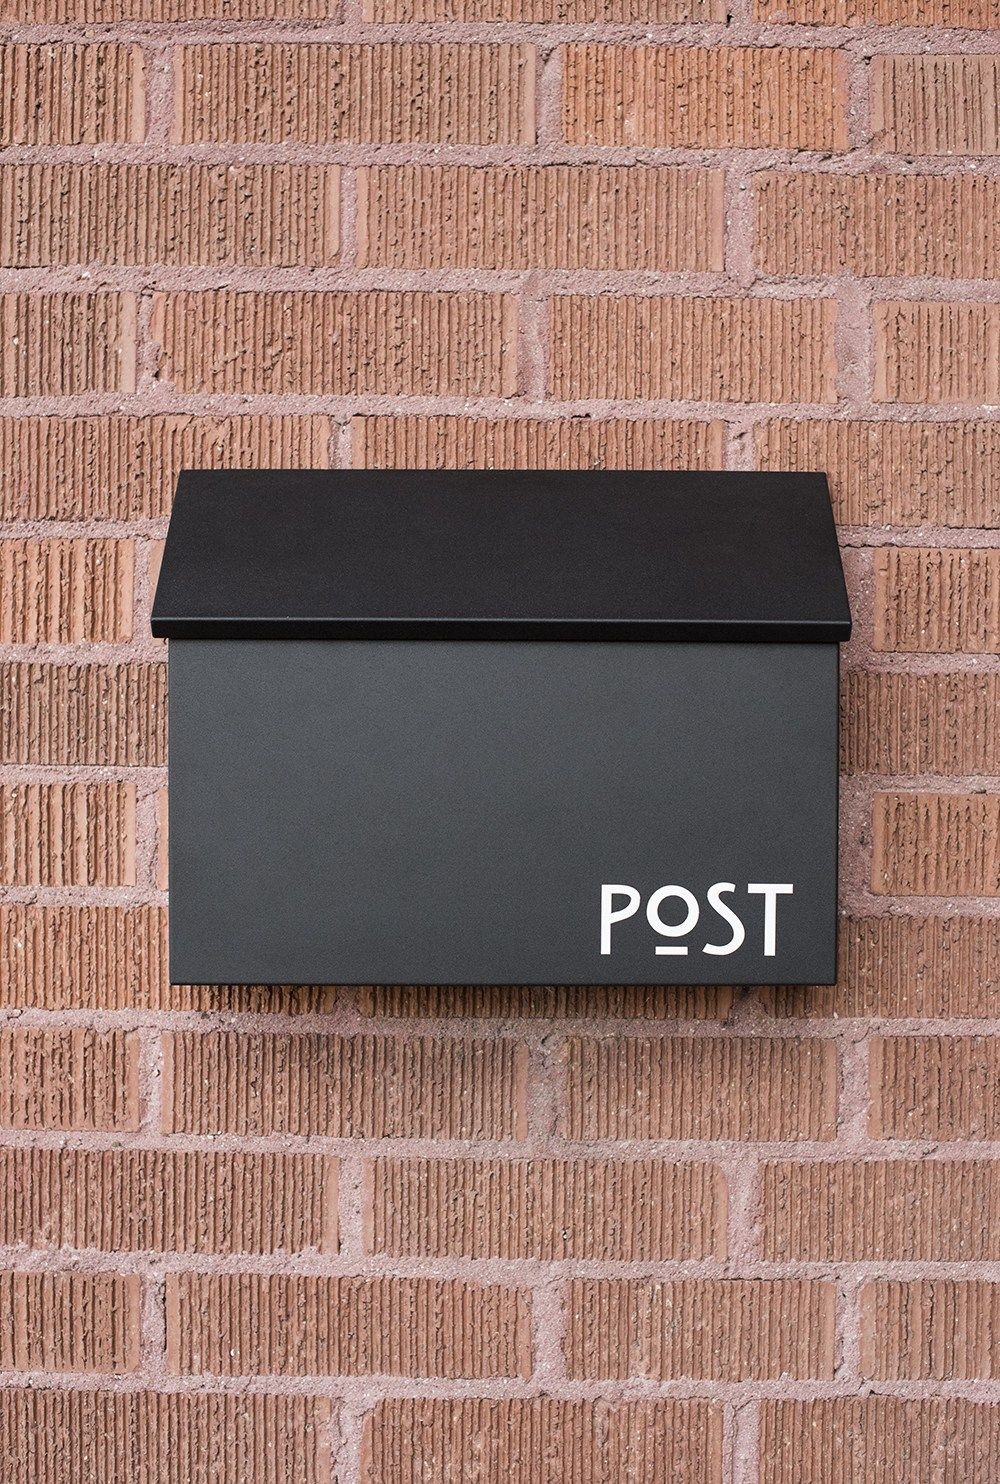 Best Of Etsy Wall Mount Mailboxes Room For Tuesday Blog Diy Mailbox Wall Mount Mailbox Mounted Mailbox